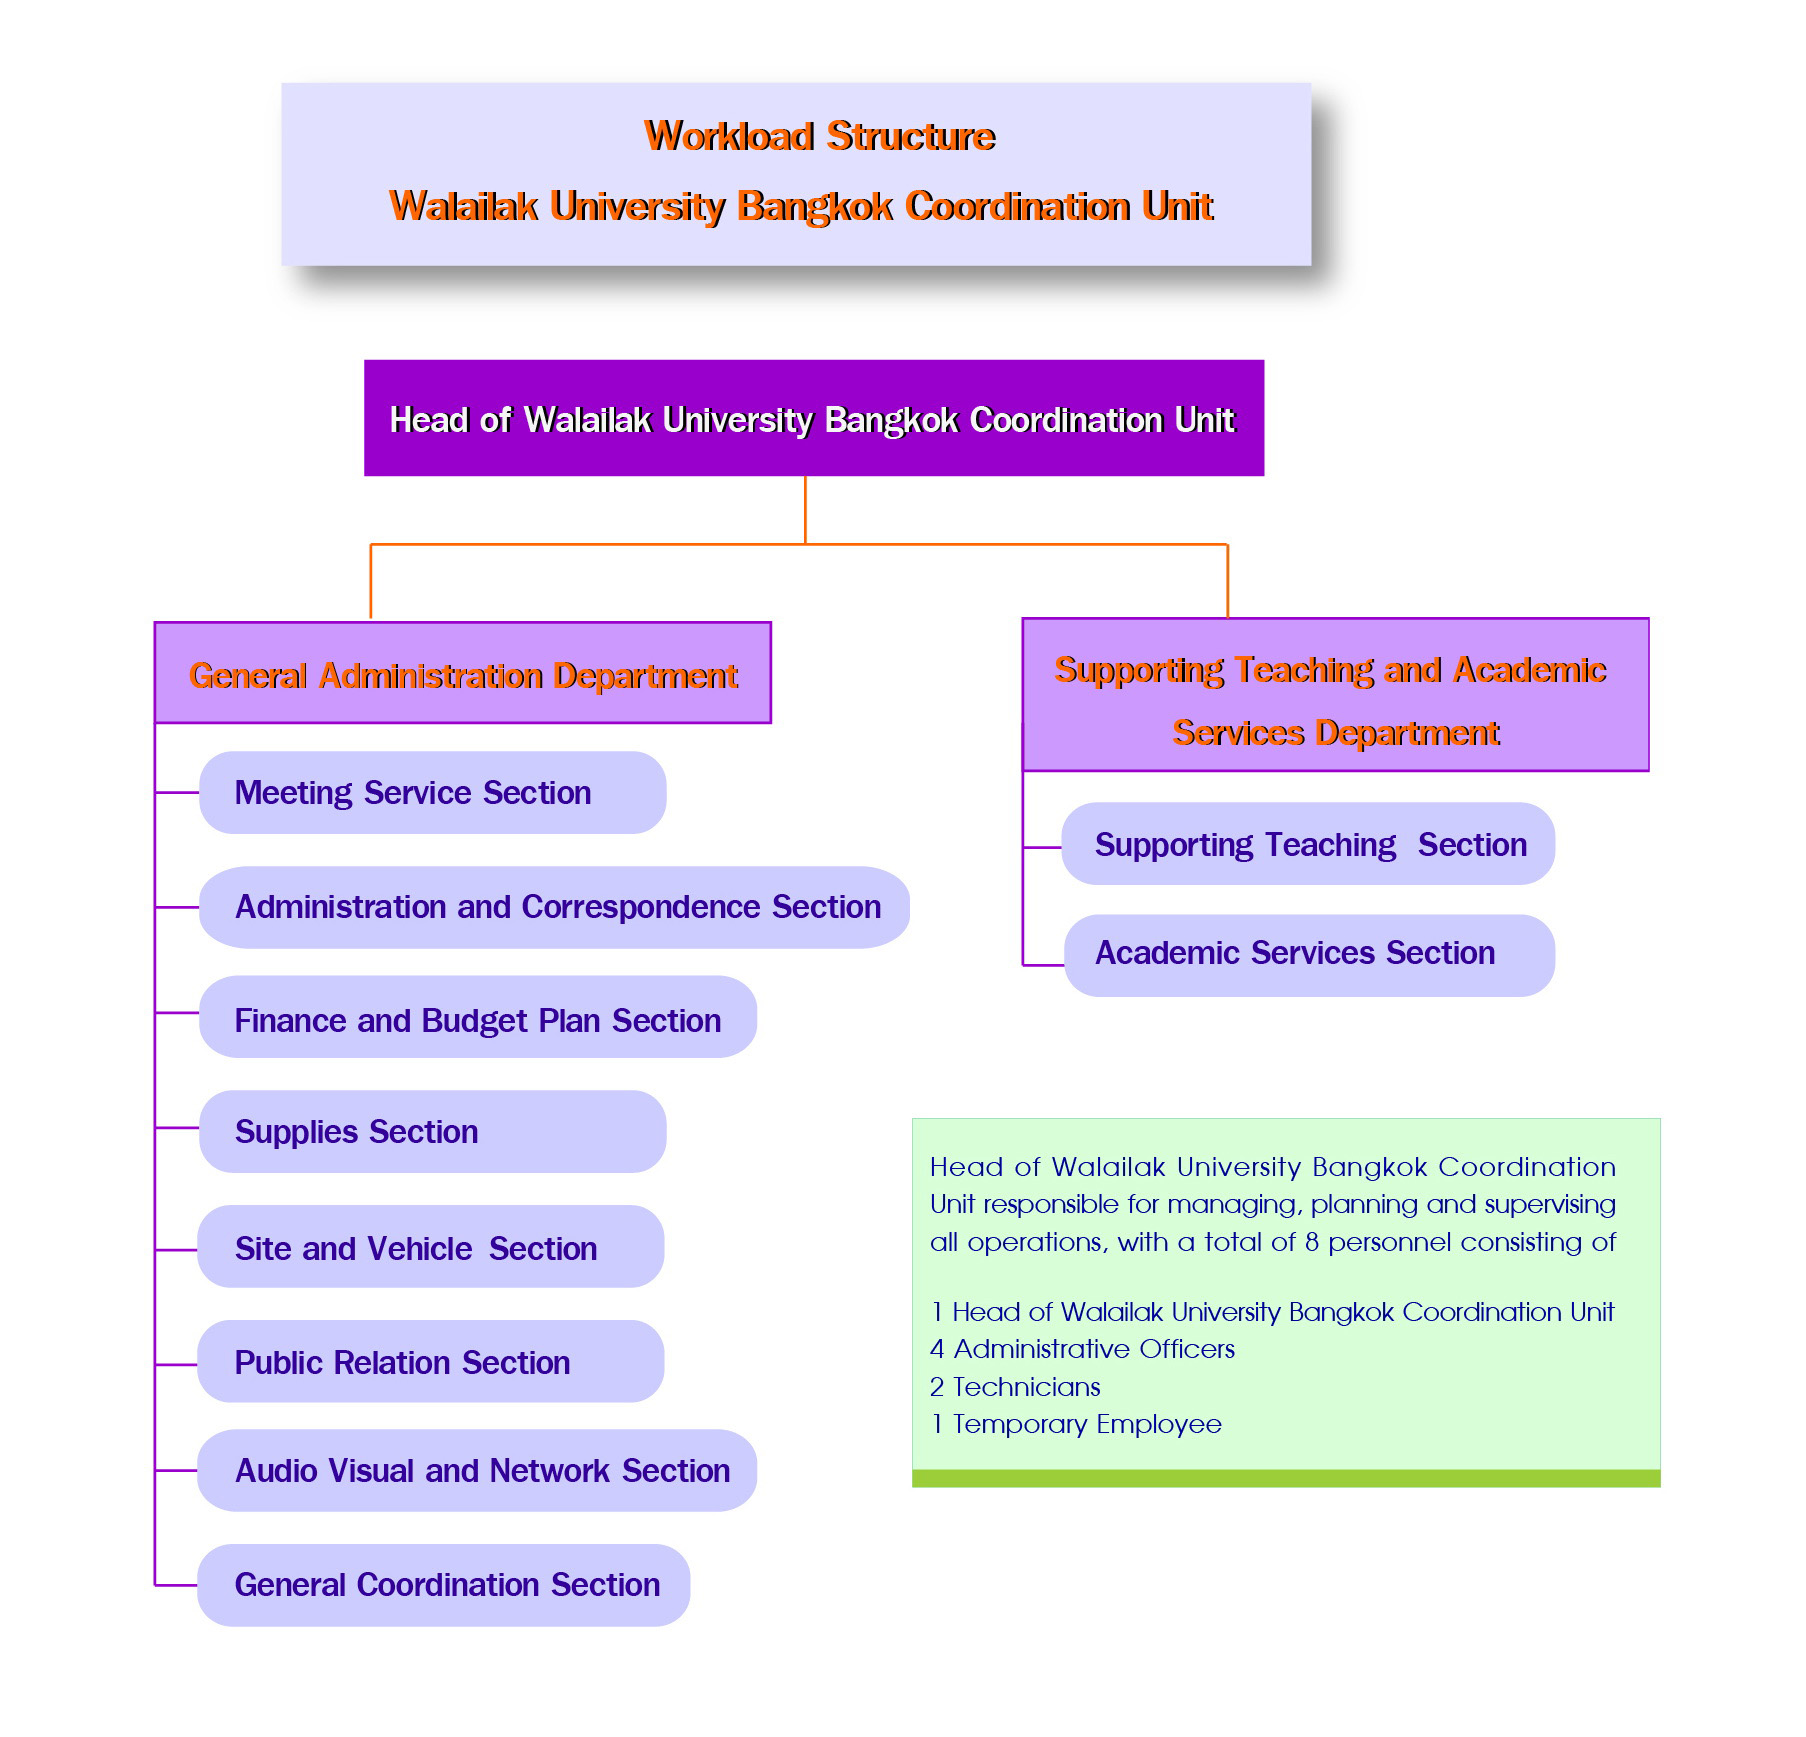 Workload structure